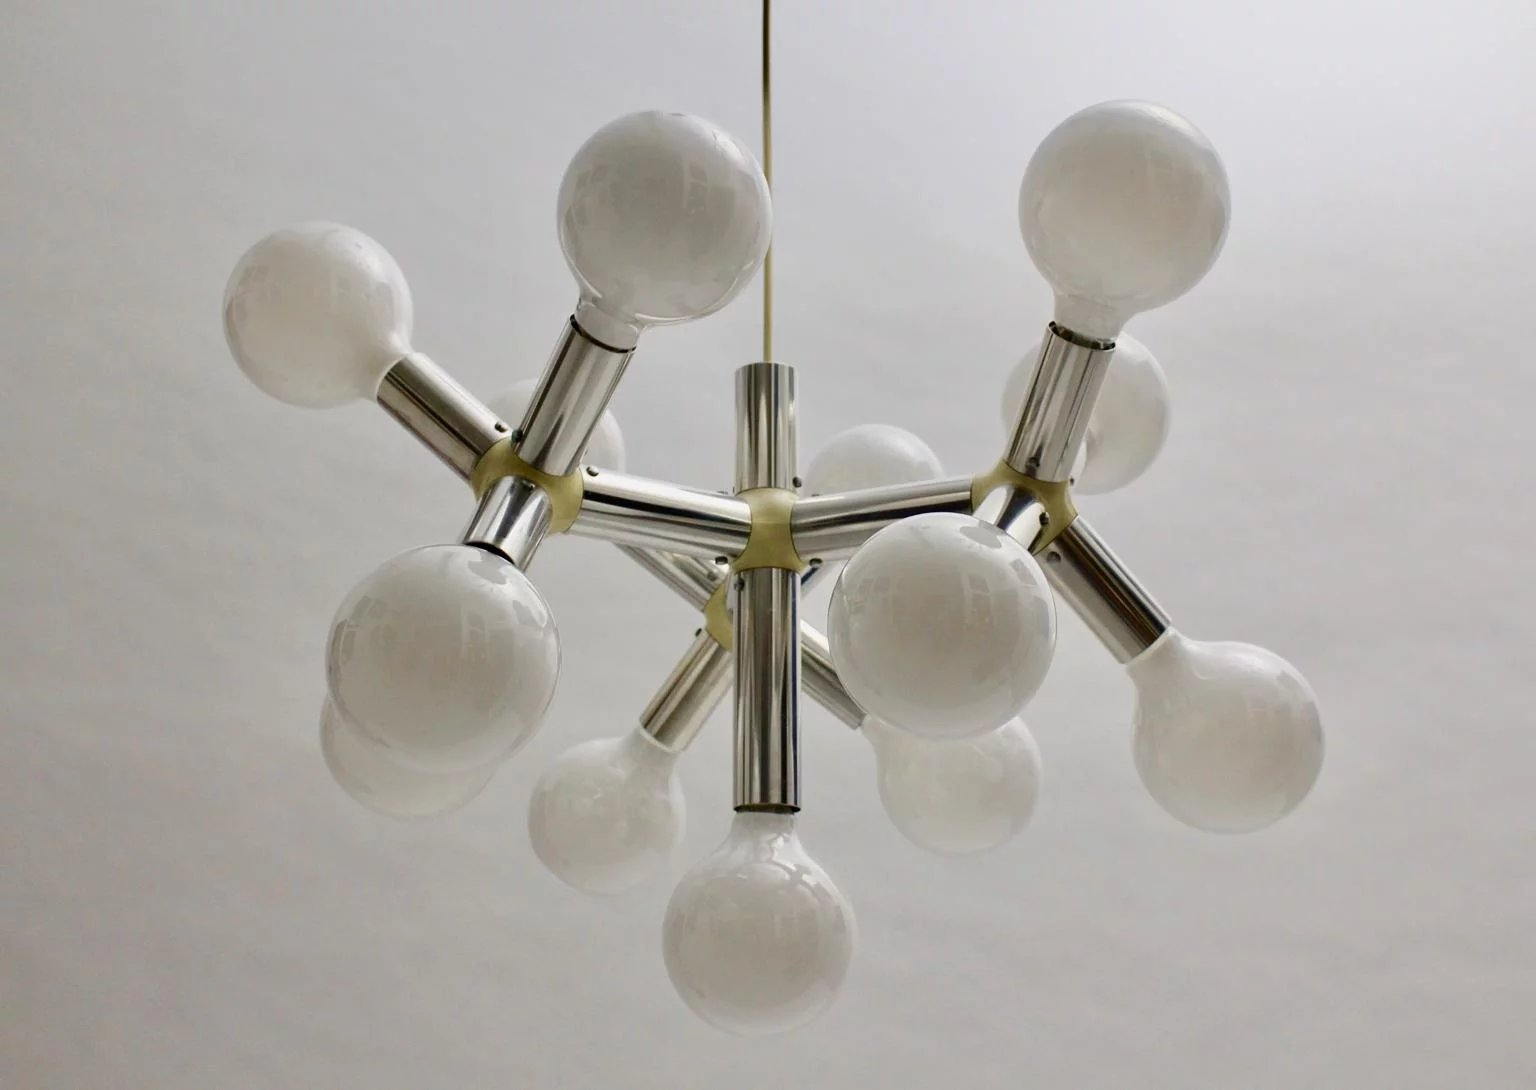 Atomic chandelier by robert haussmann 1960s switzerland nobarock atomic chandelier by robert haussmann 1960s switzerland click to expand arubaitofo Image collections